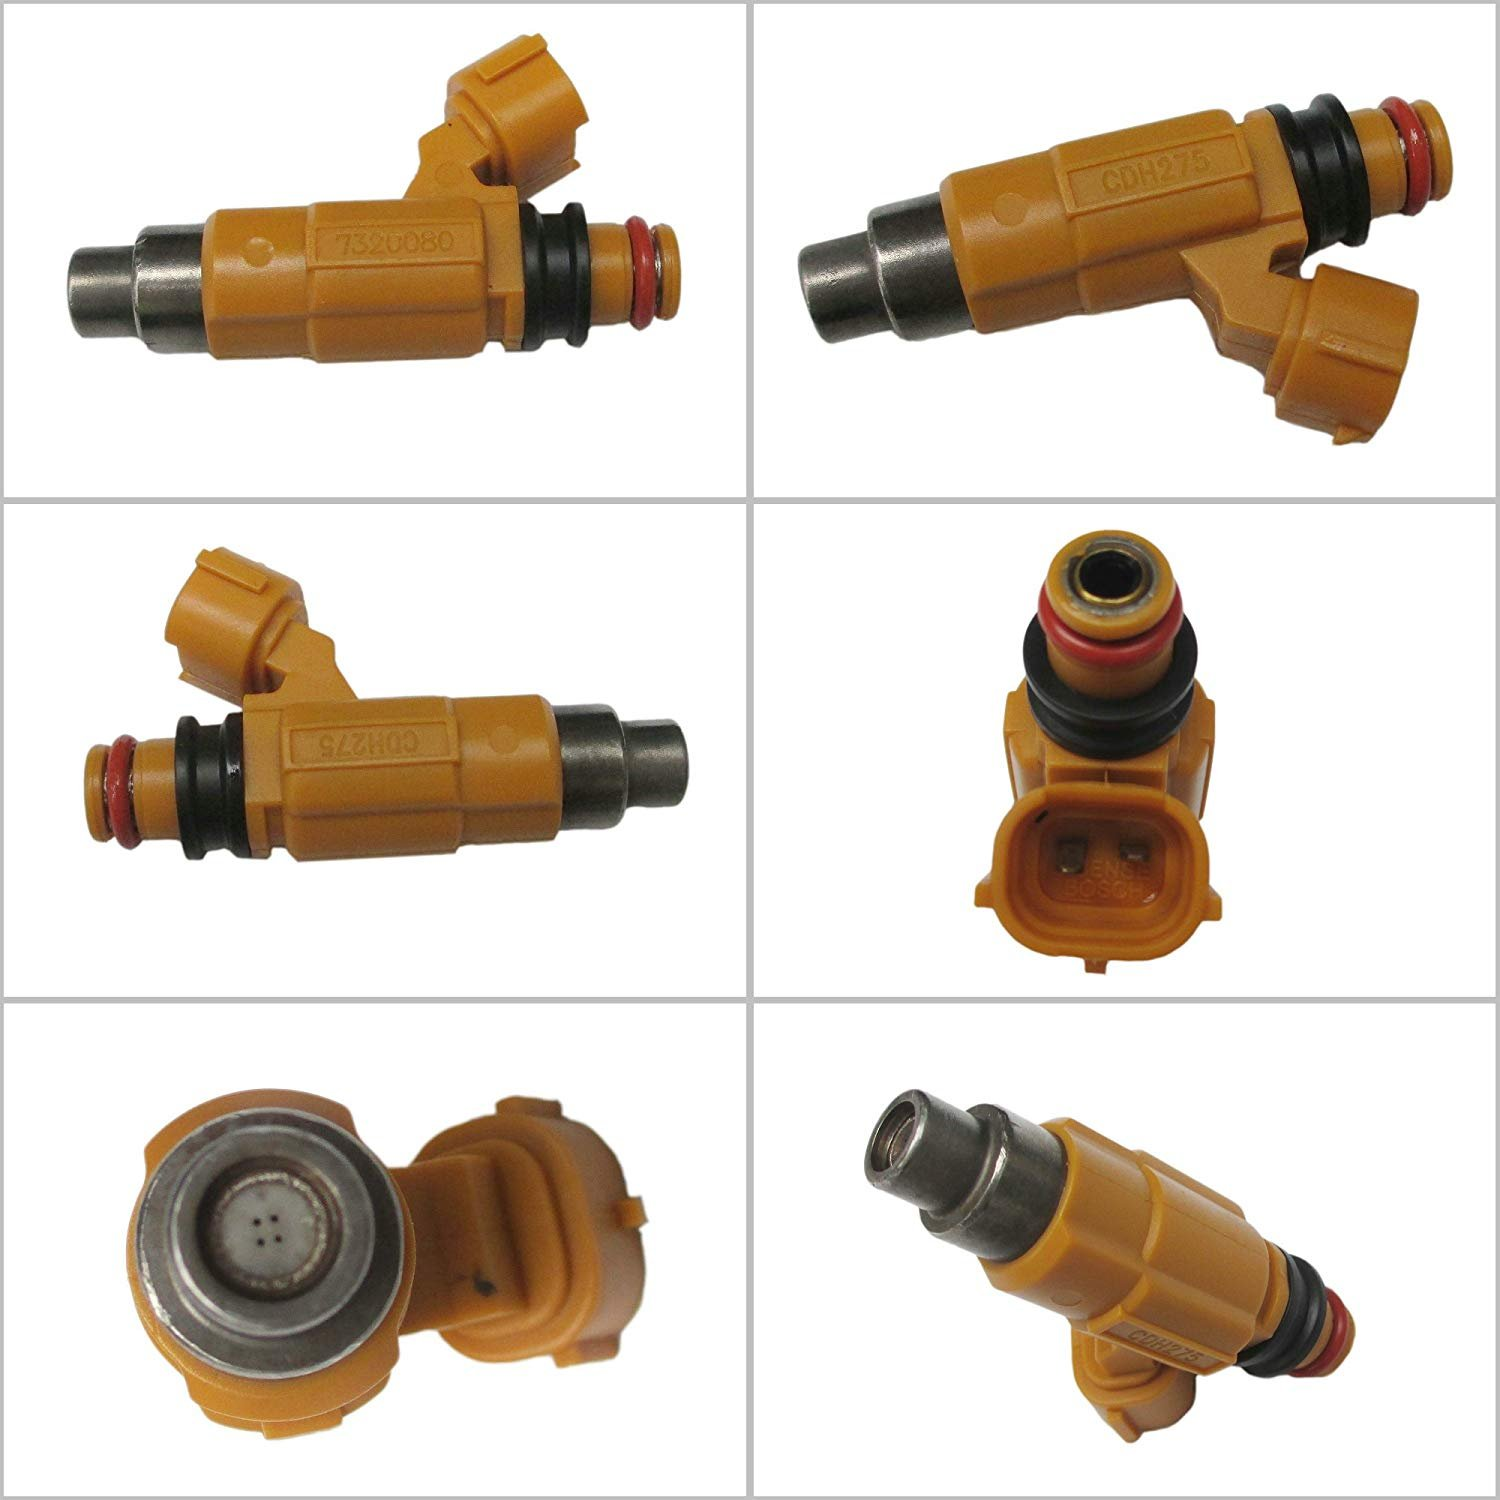 4 Brand New Fuel Injectors Fit For MARINE YAMAHA F150 FOUR STROKE OUTBOARD CDH-275